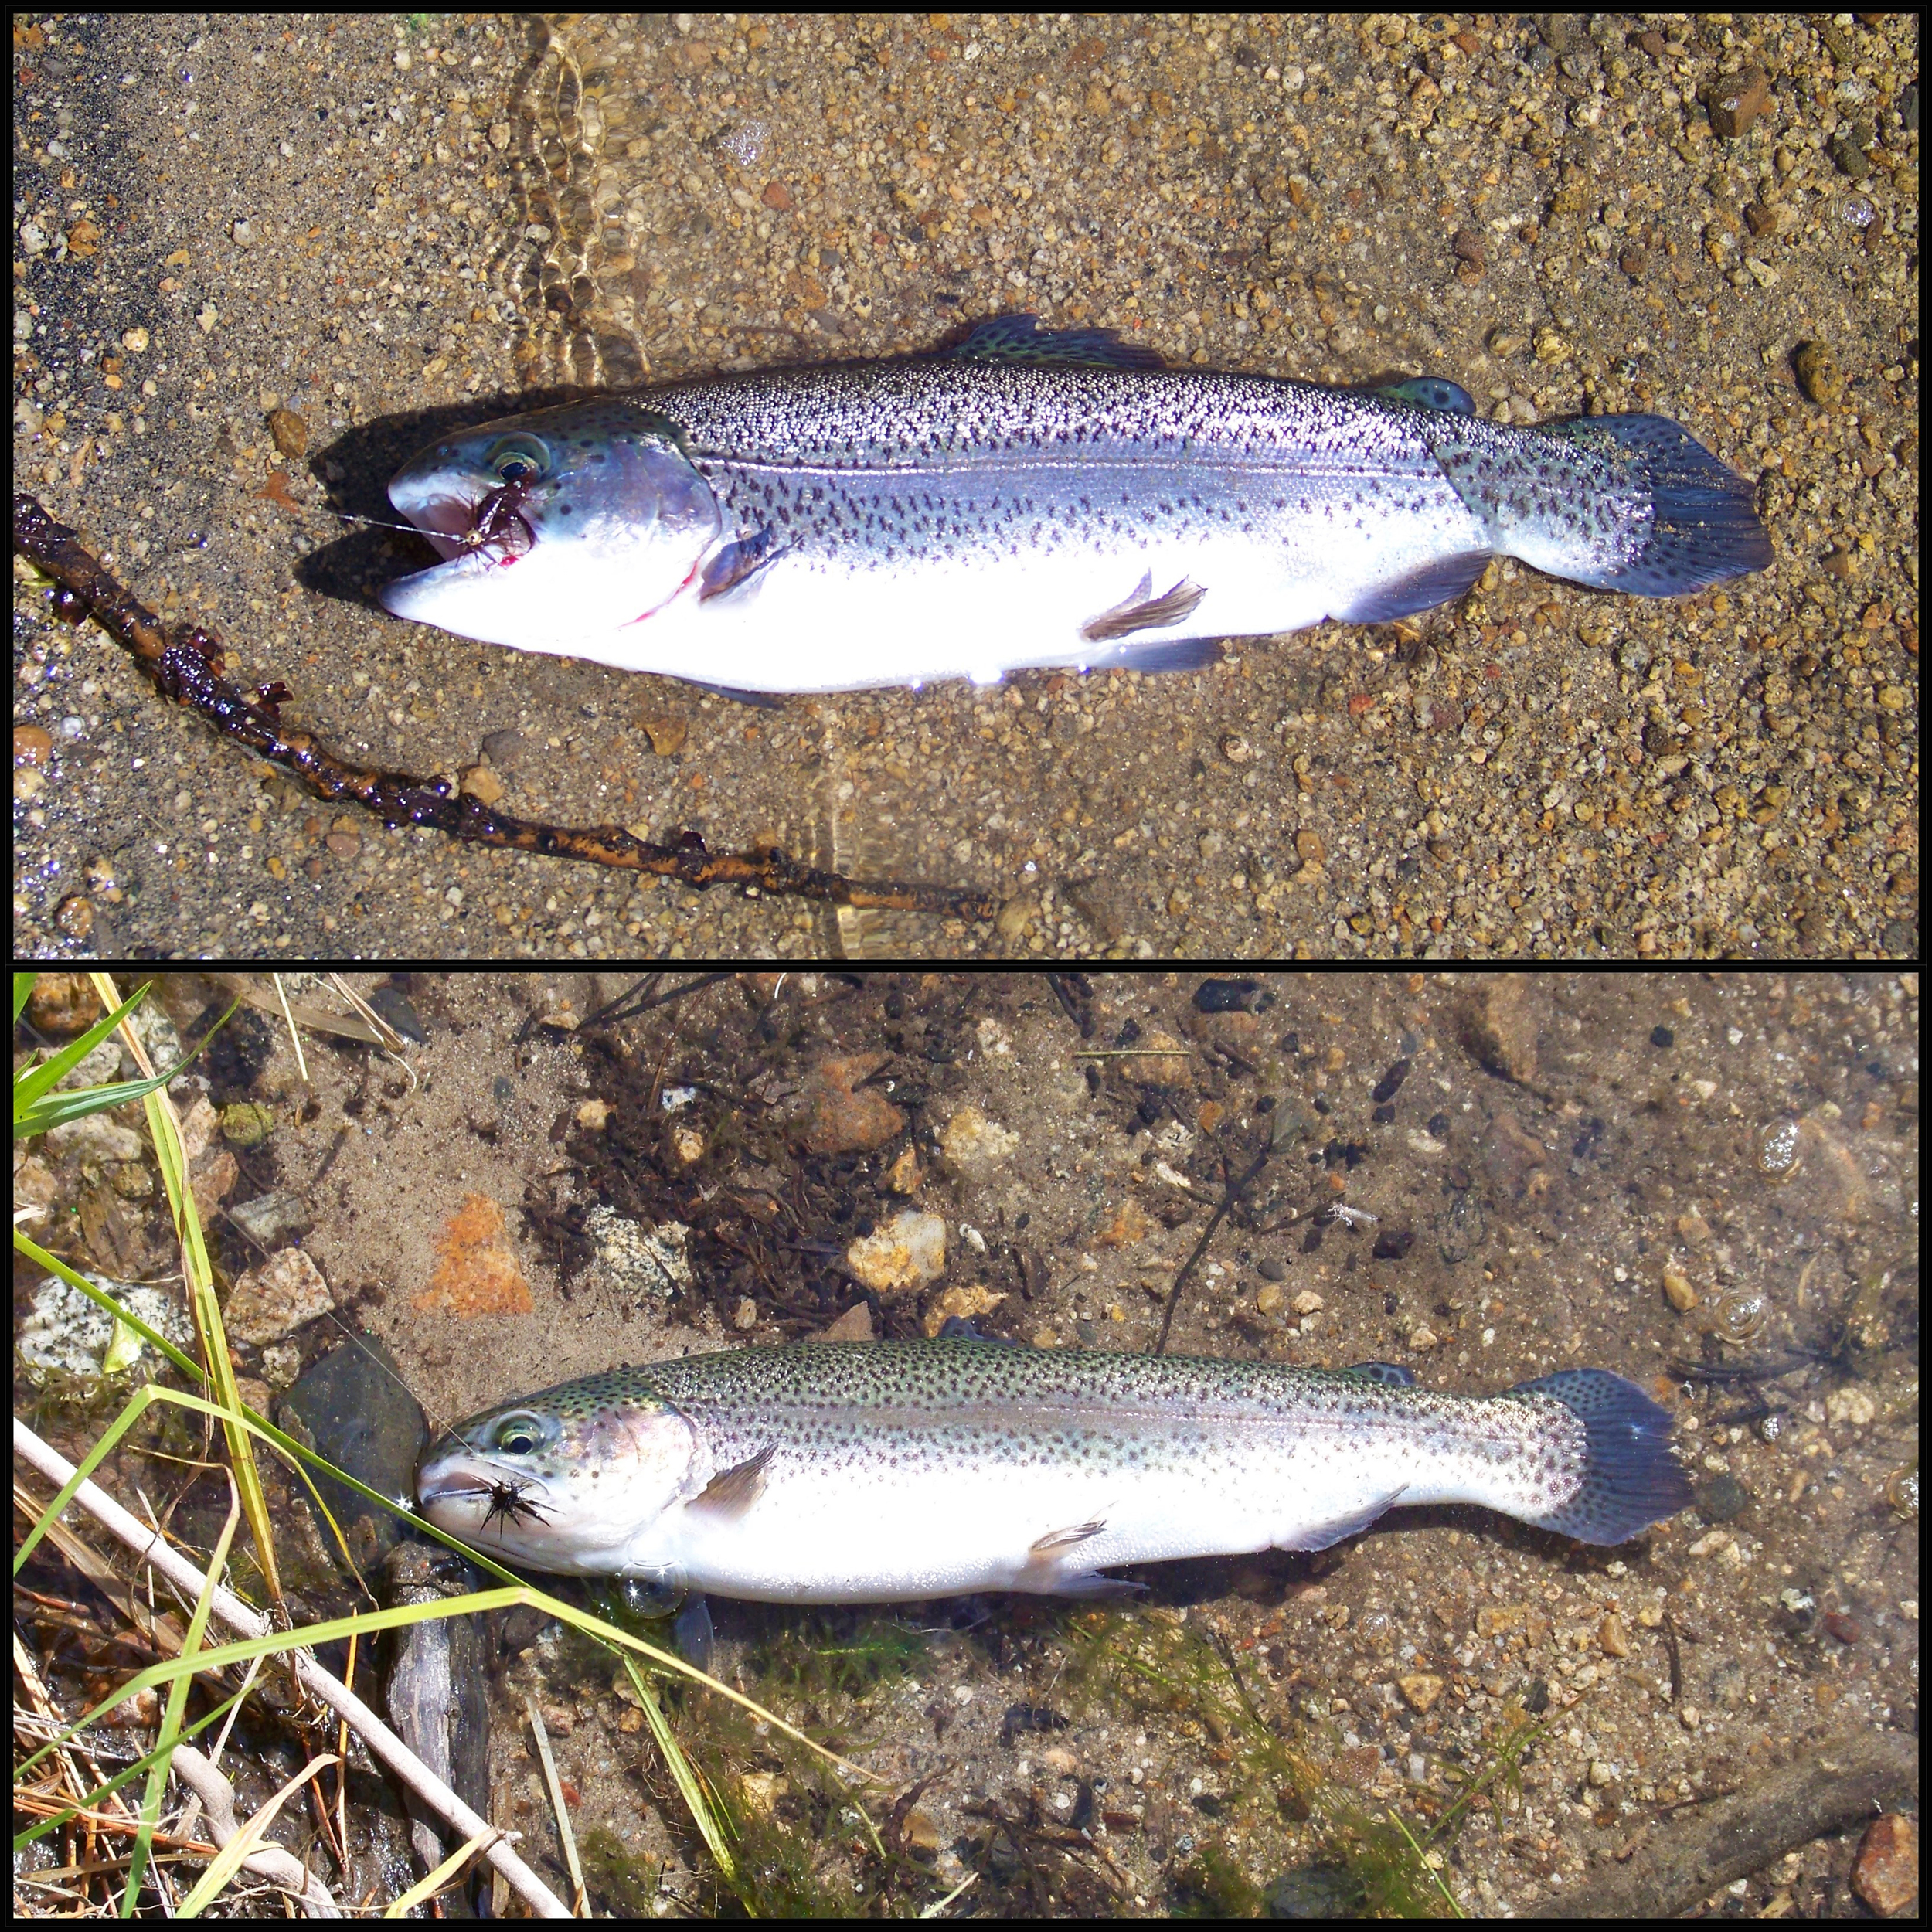 Two beautiful Mammoth Lake's Rainbow Trout, fooled with the Float and Fly